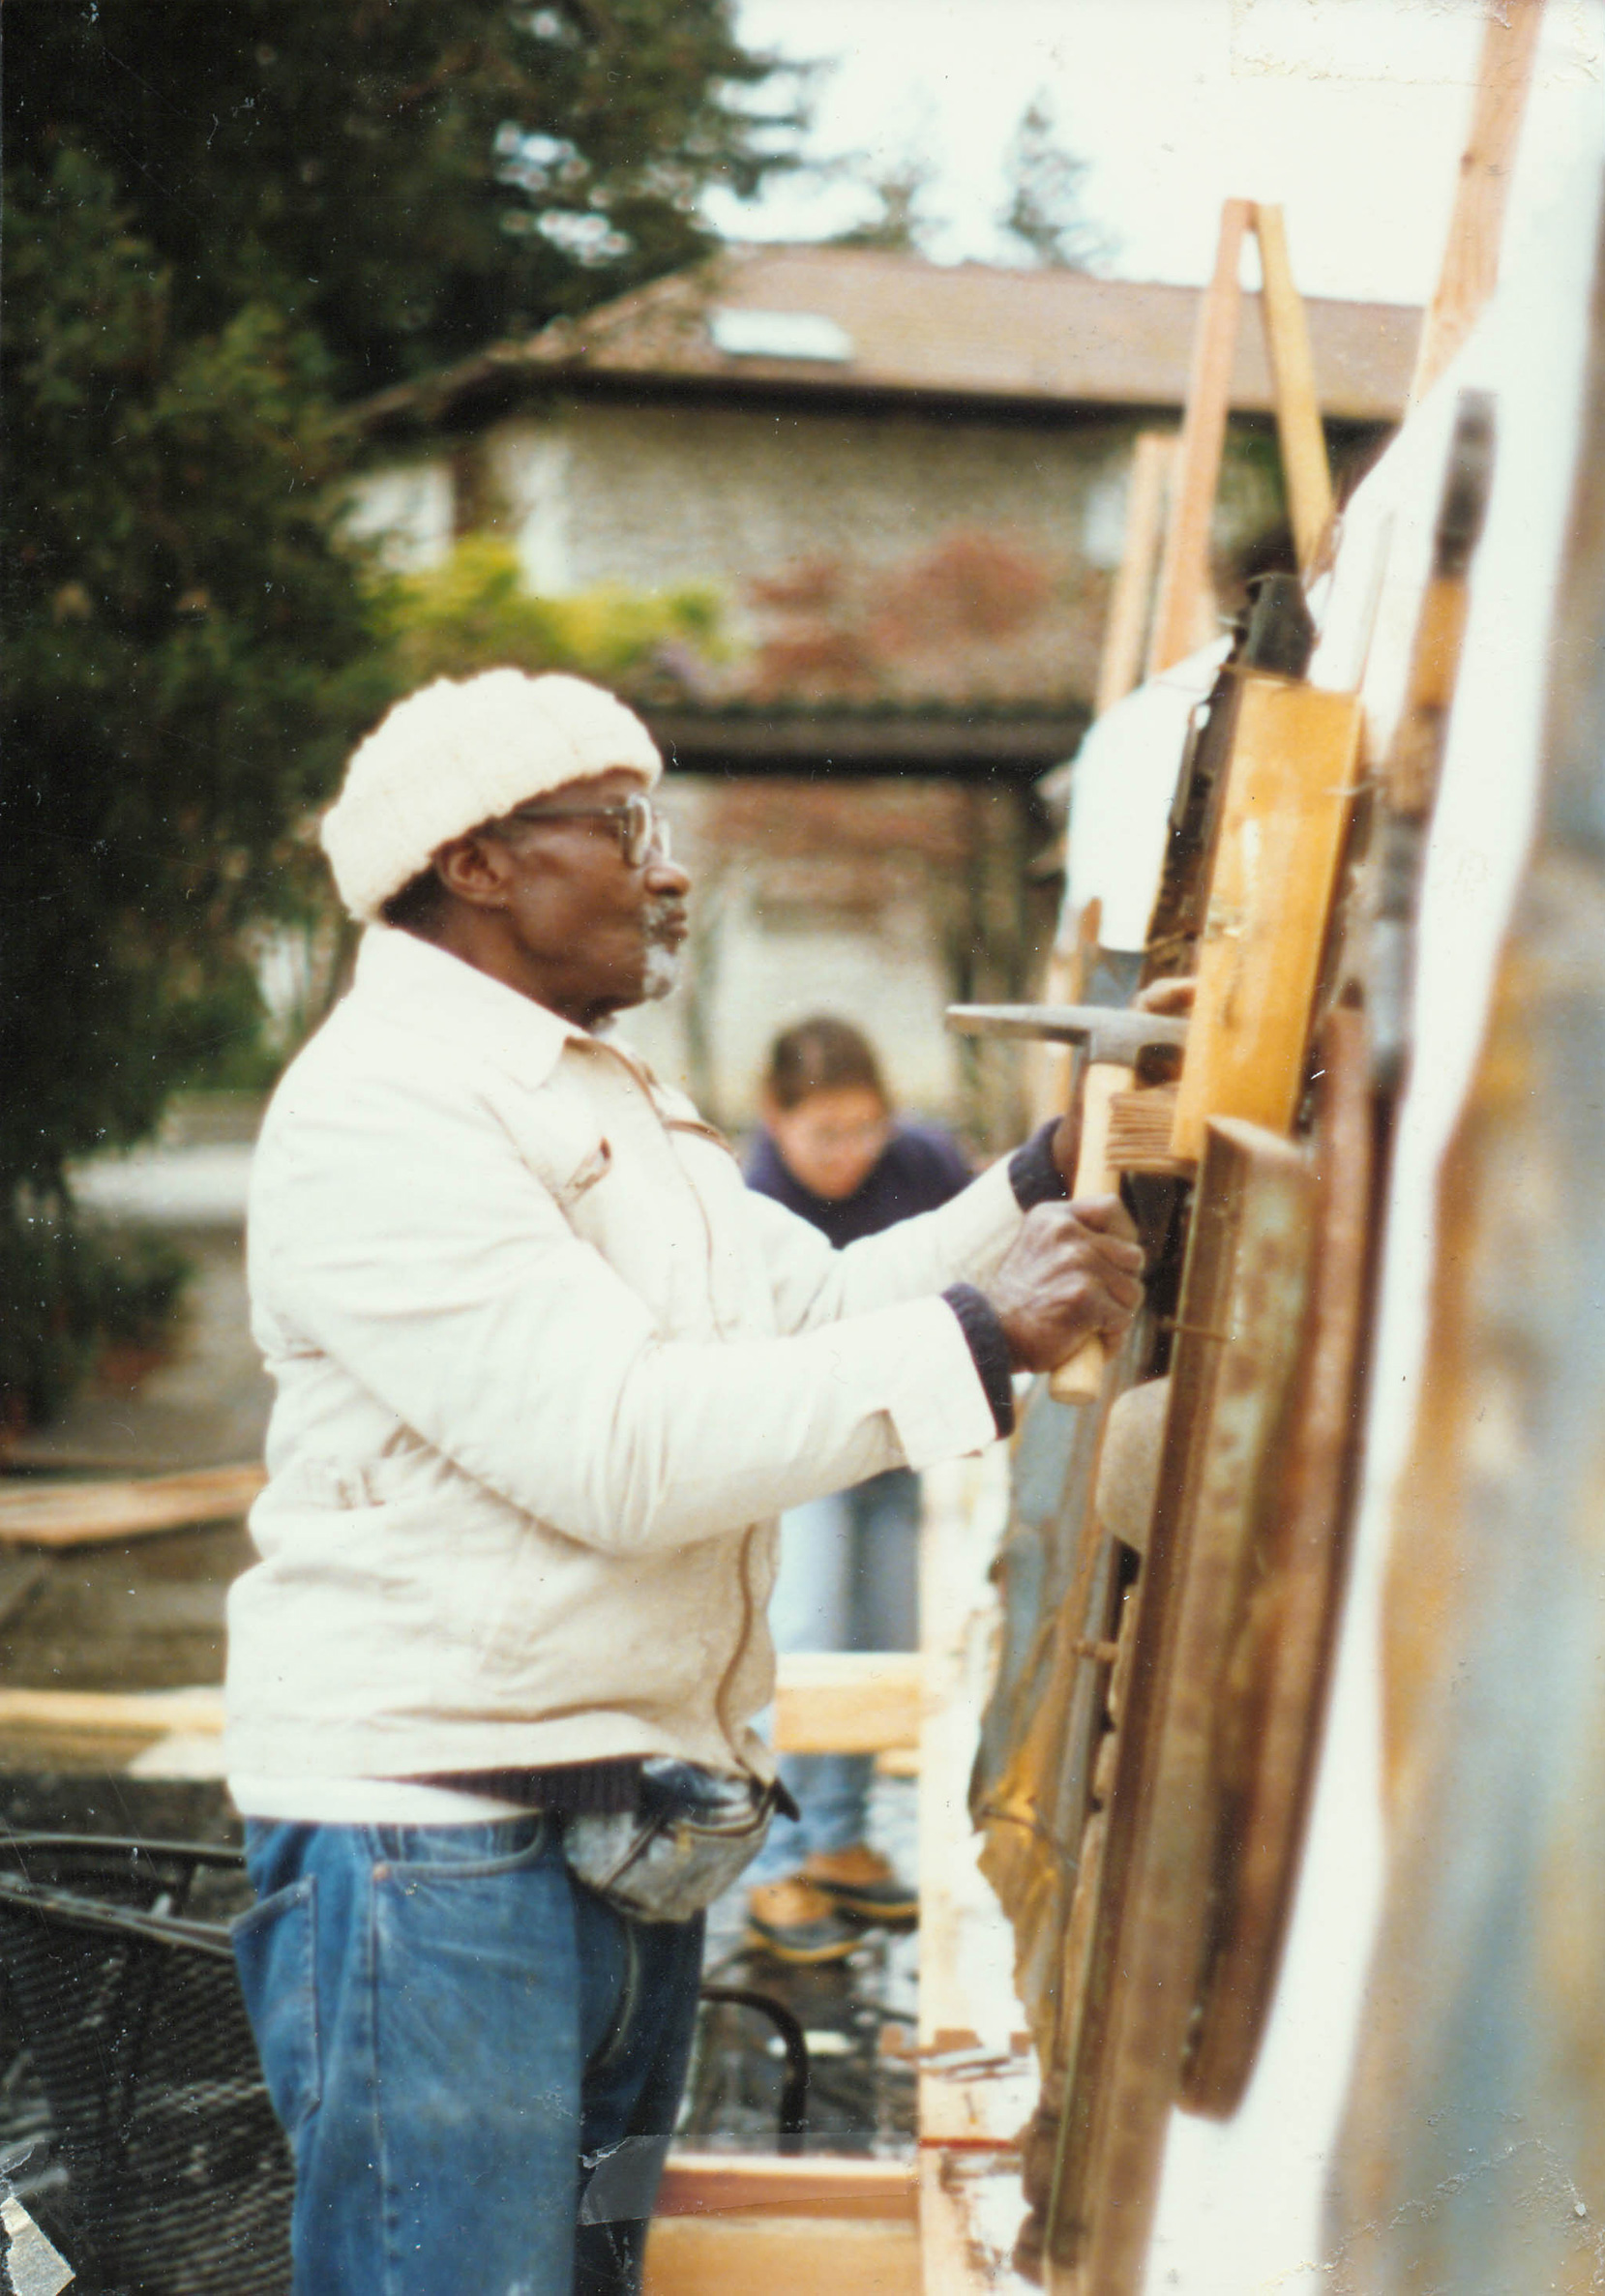 Noah Purifoy at Cowell College, UC Santa Cruz during his residency there, 1990. Photograph courtesy of the Noah Purifoy Foundation.